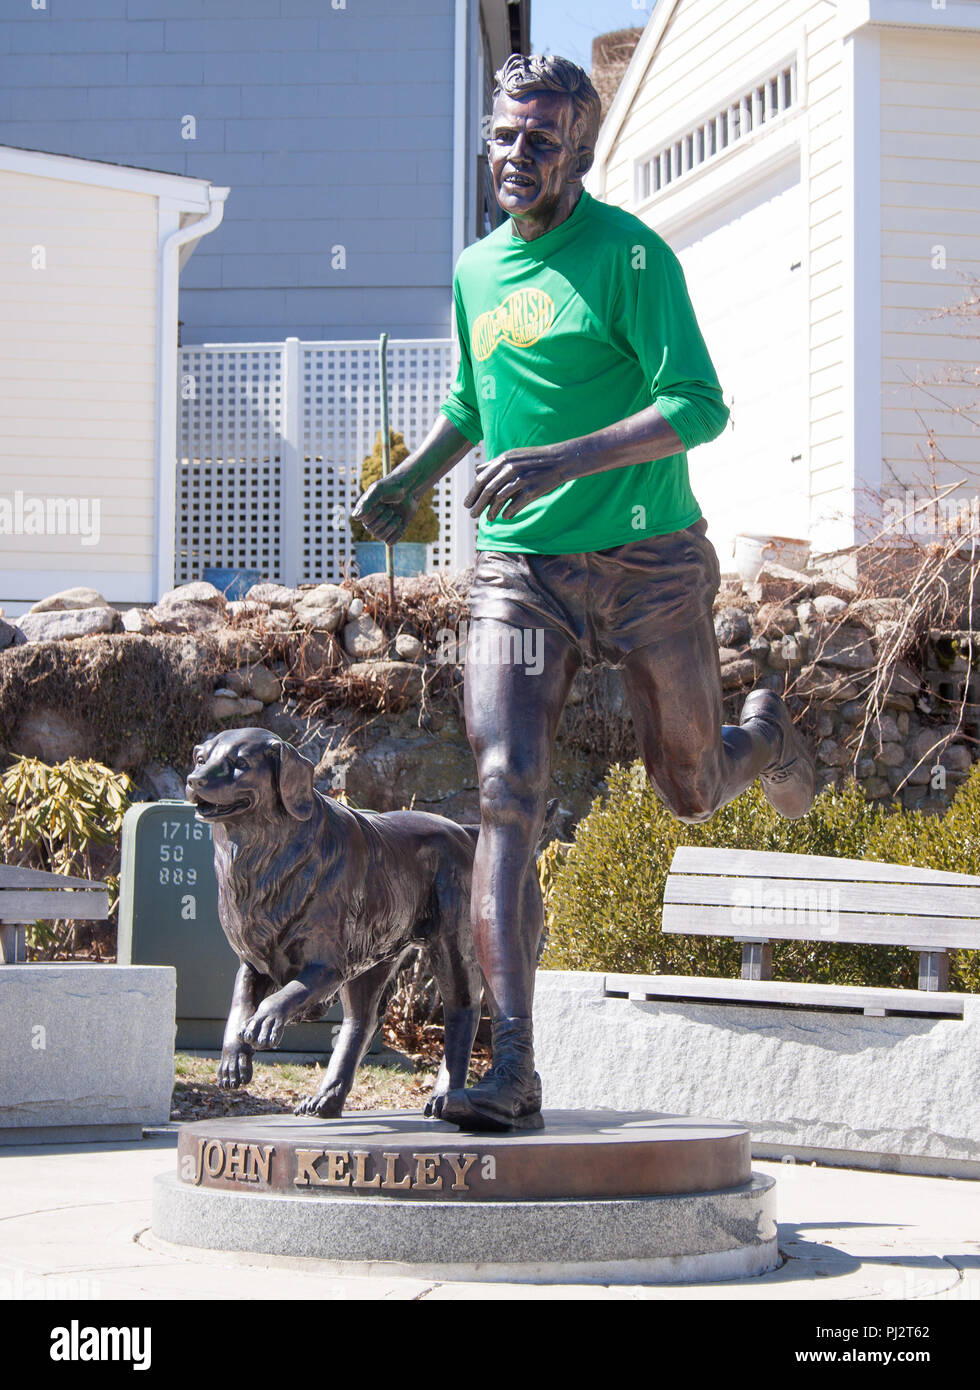 John Kelley and his dog statue in Mystic Connecticut, winner of the 1957 Boston Marathon. - Stock Image